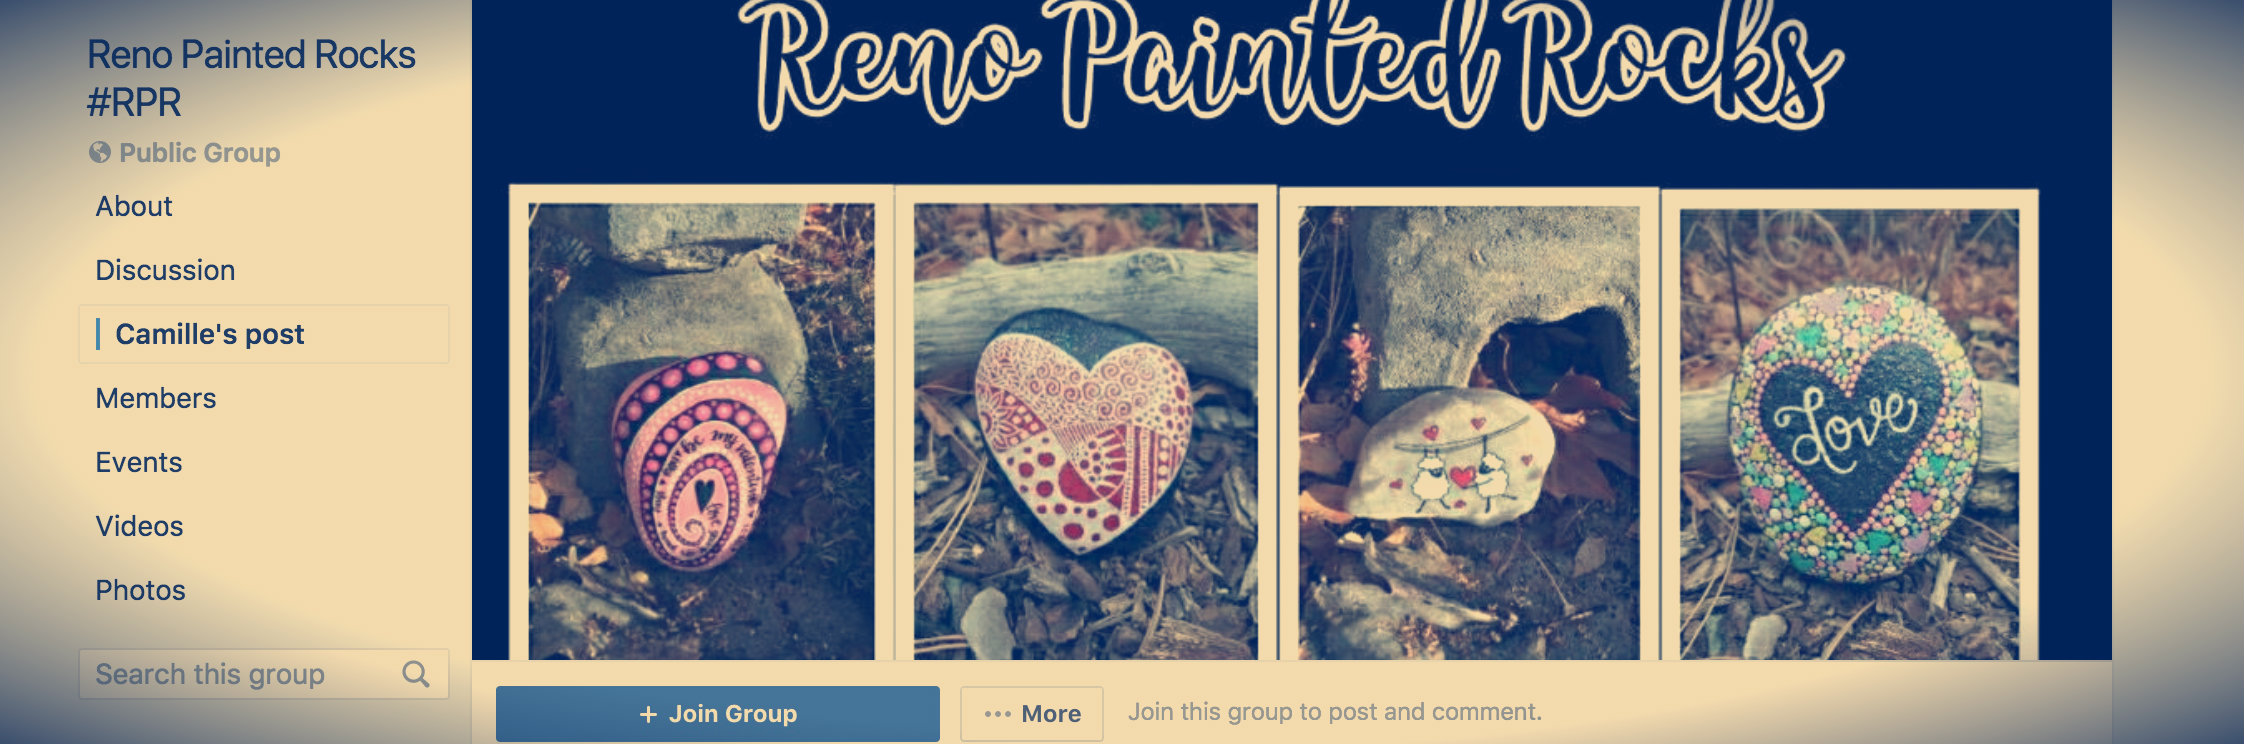 "People who find the rocks take pictures of them and post them to Facebook to have their find shared with the group. Walker, who works in a bakery, said she ""loves"" Reno and described the art scene in the city as up and coming. ""(The up and coming art scene) is a big draw for me, I love the arts, so (Reno has) got nice culture."""